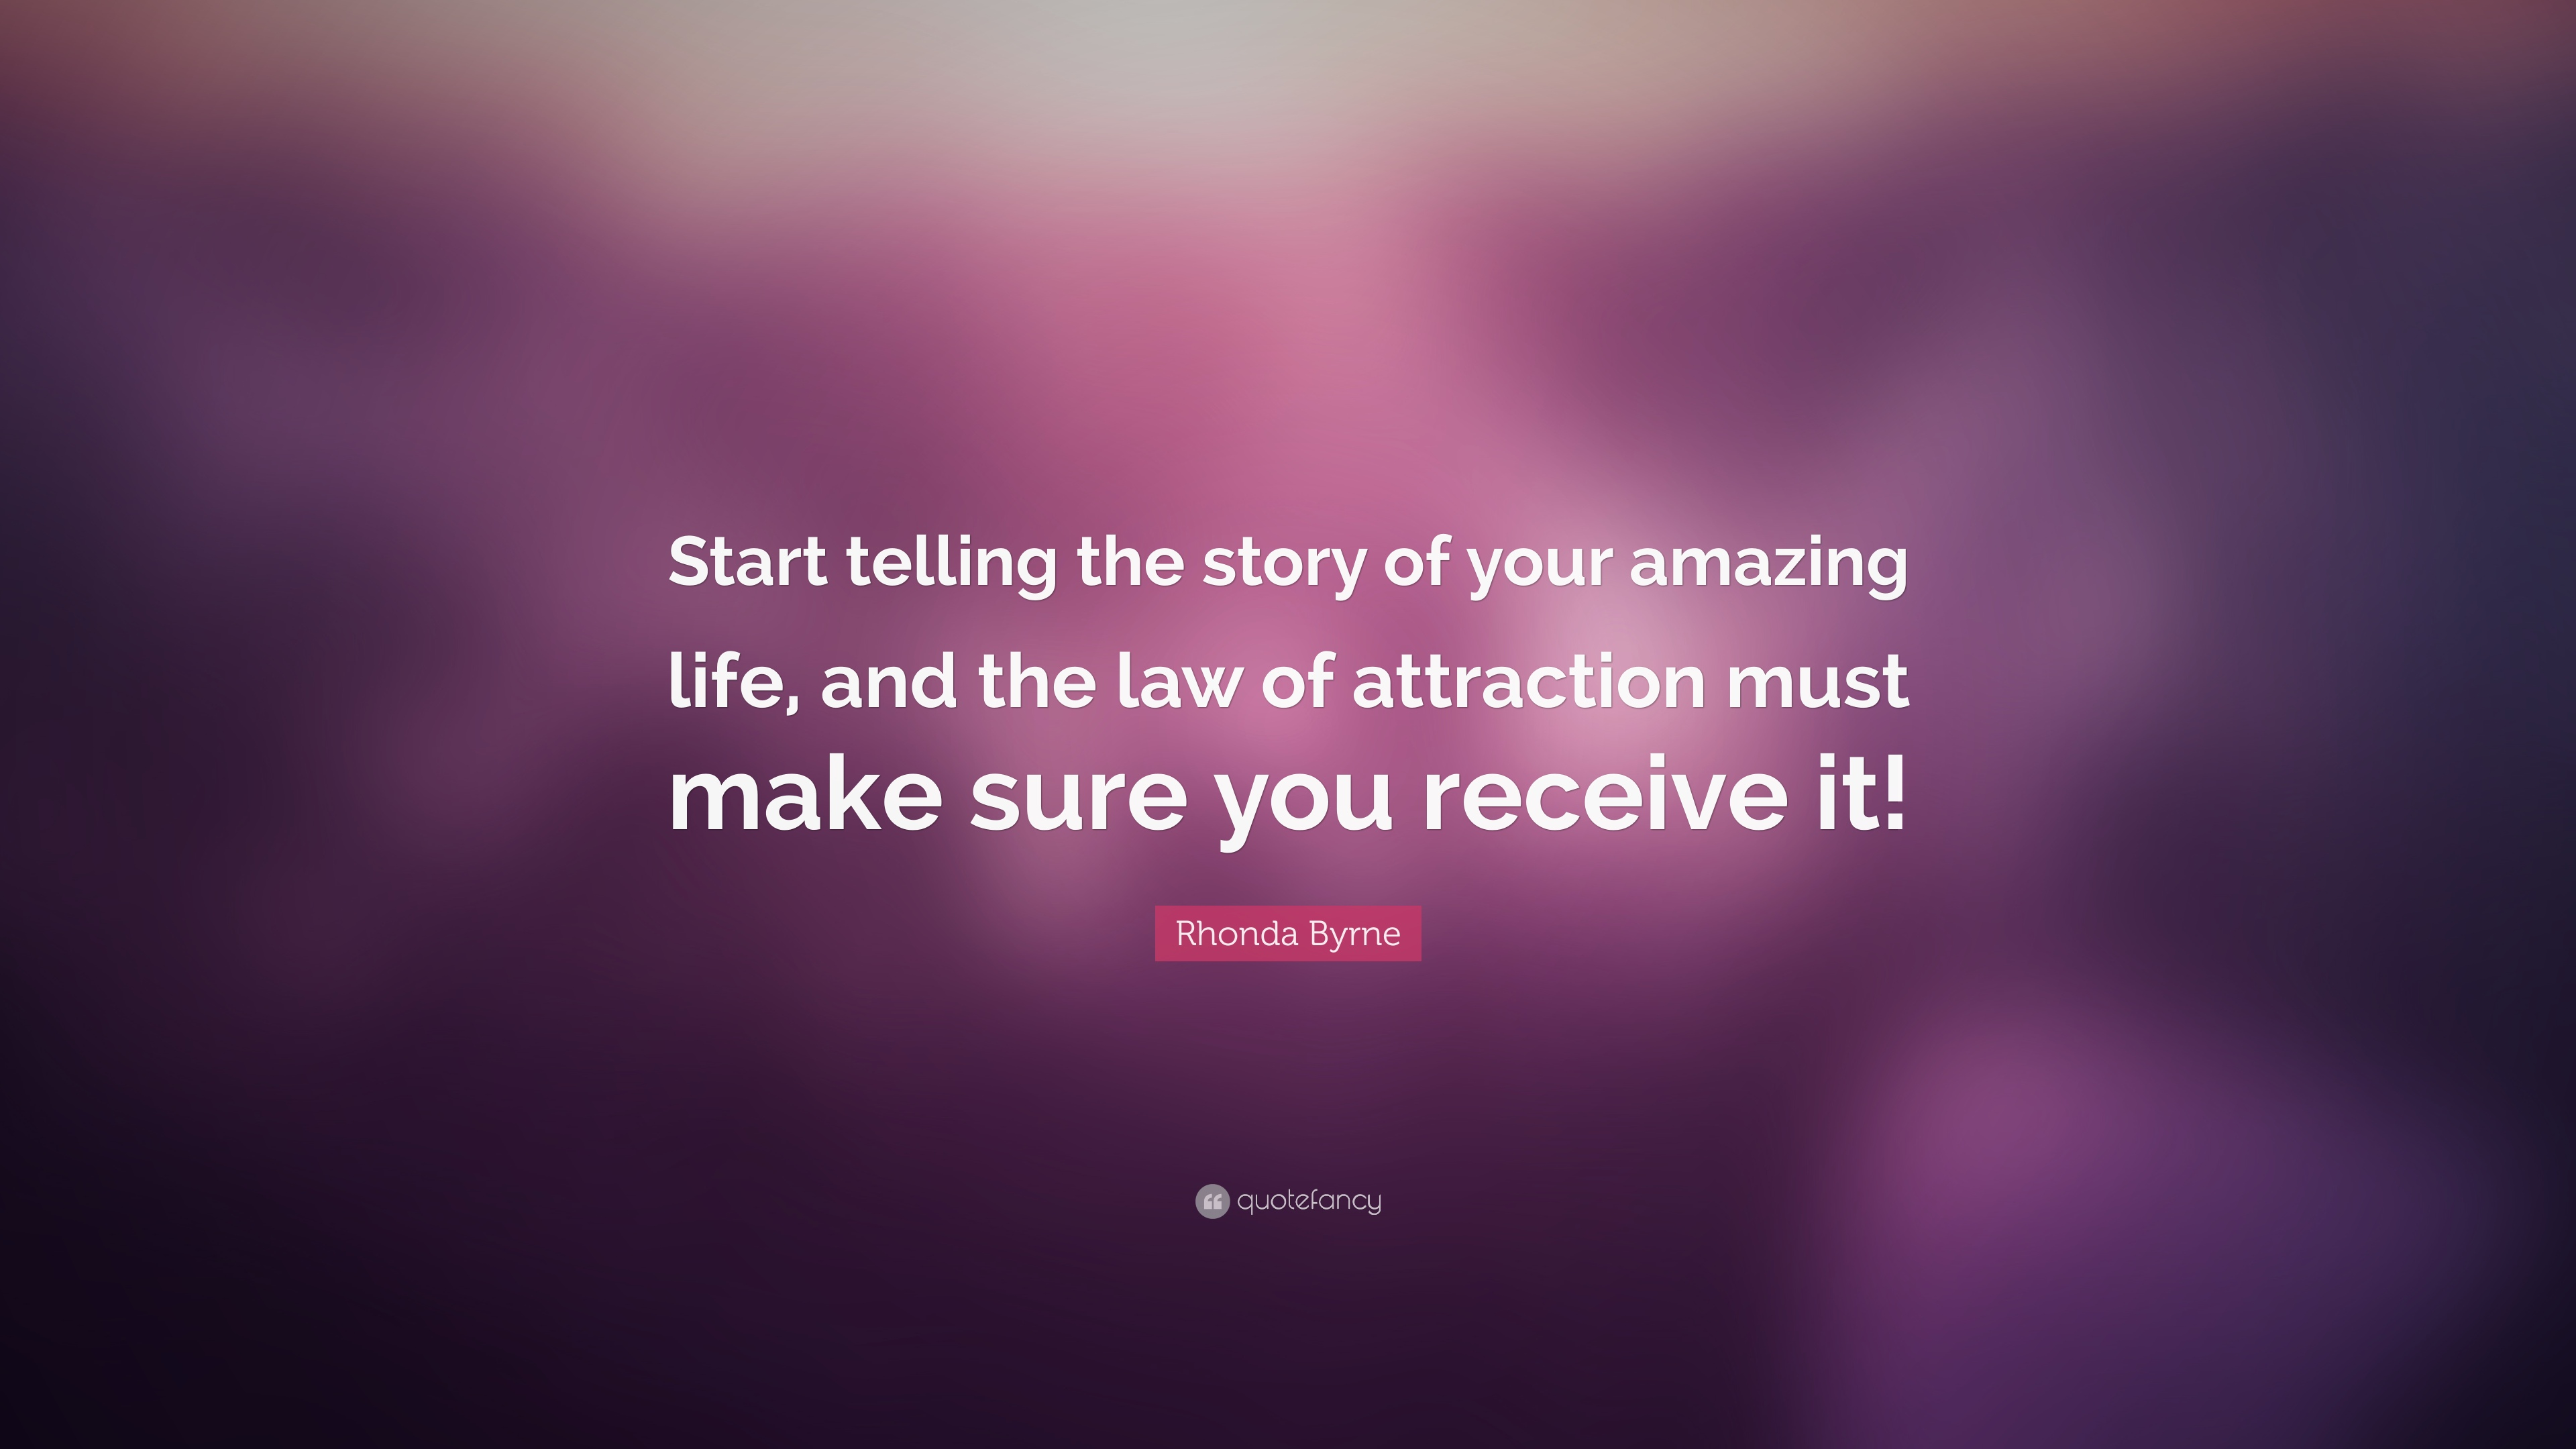 Law Of Attraction Quotes Custom Law Of Attraction Quotes 40 Wallpapers  Quotefancy